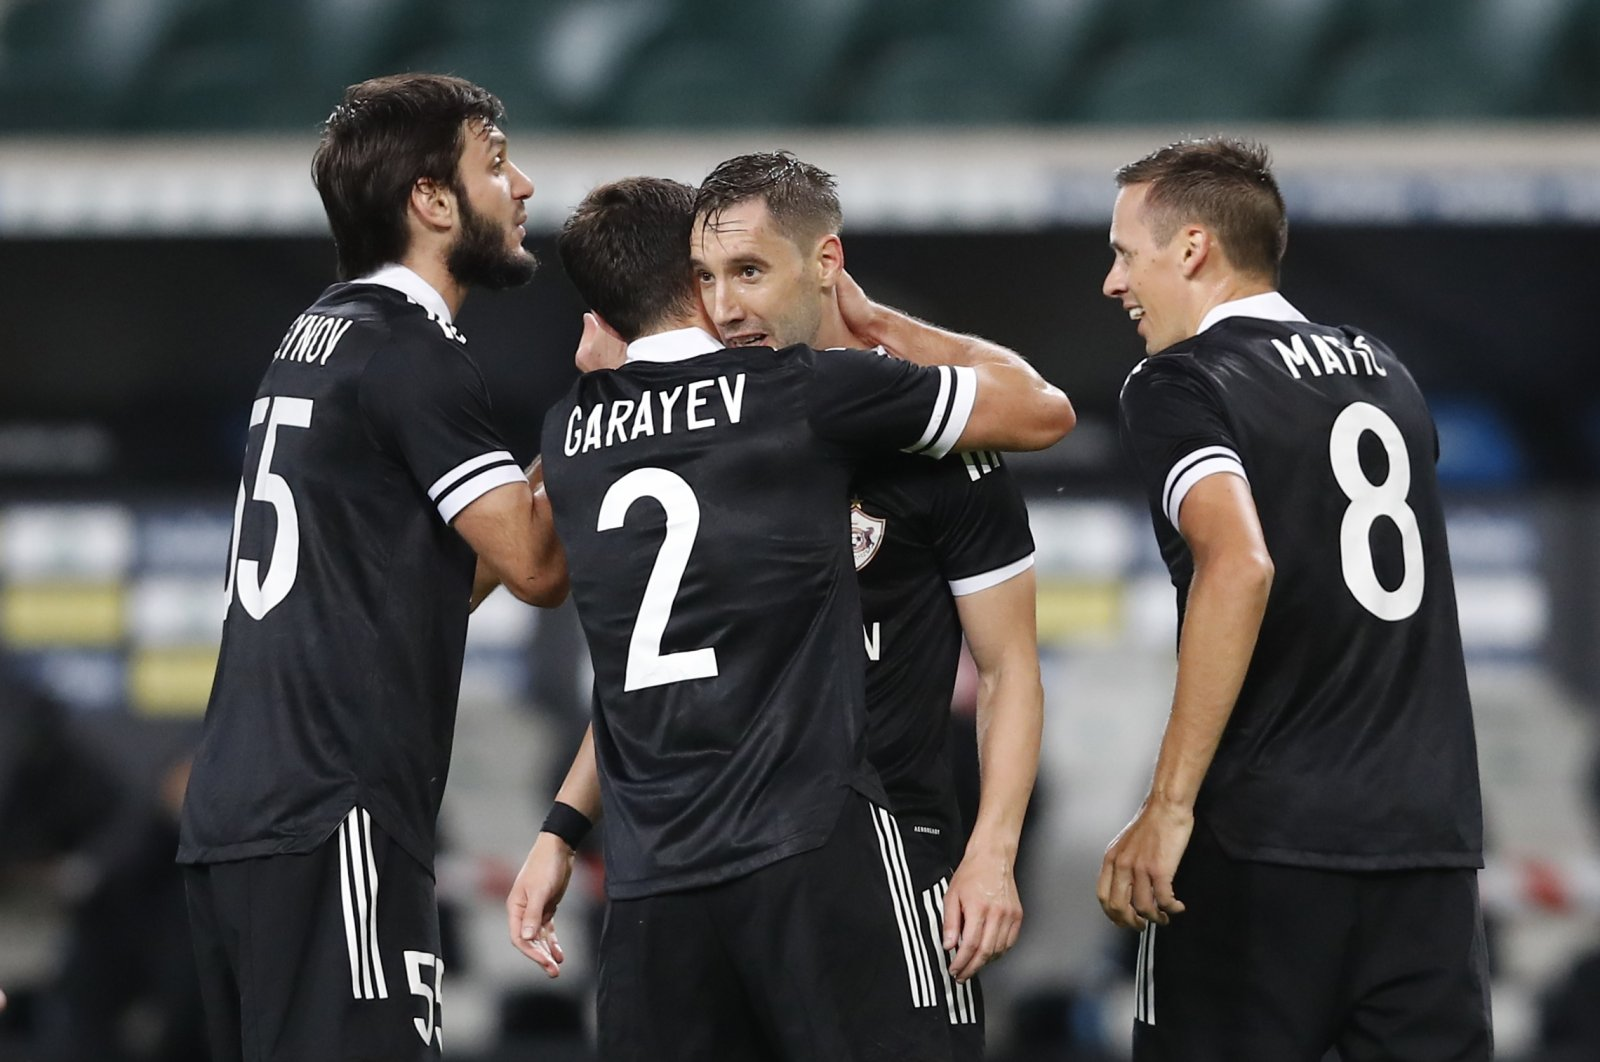 Qarabag players celebrate after defeating Legia Warsaw in UEFA Europa League qualifiers, in Warsaw, Poland, Oct. 1, 2020. (Reuters Photo)